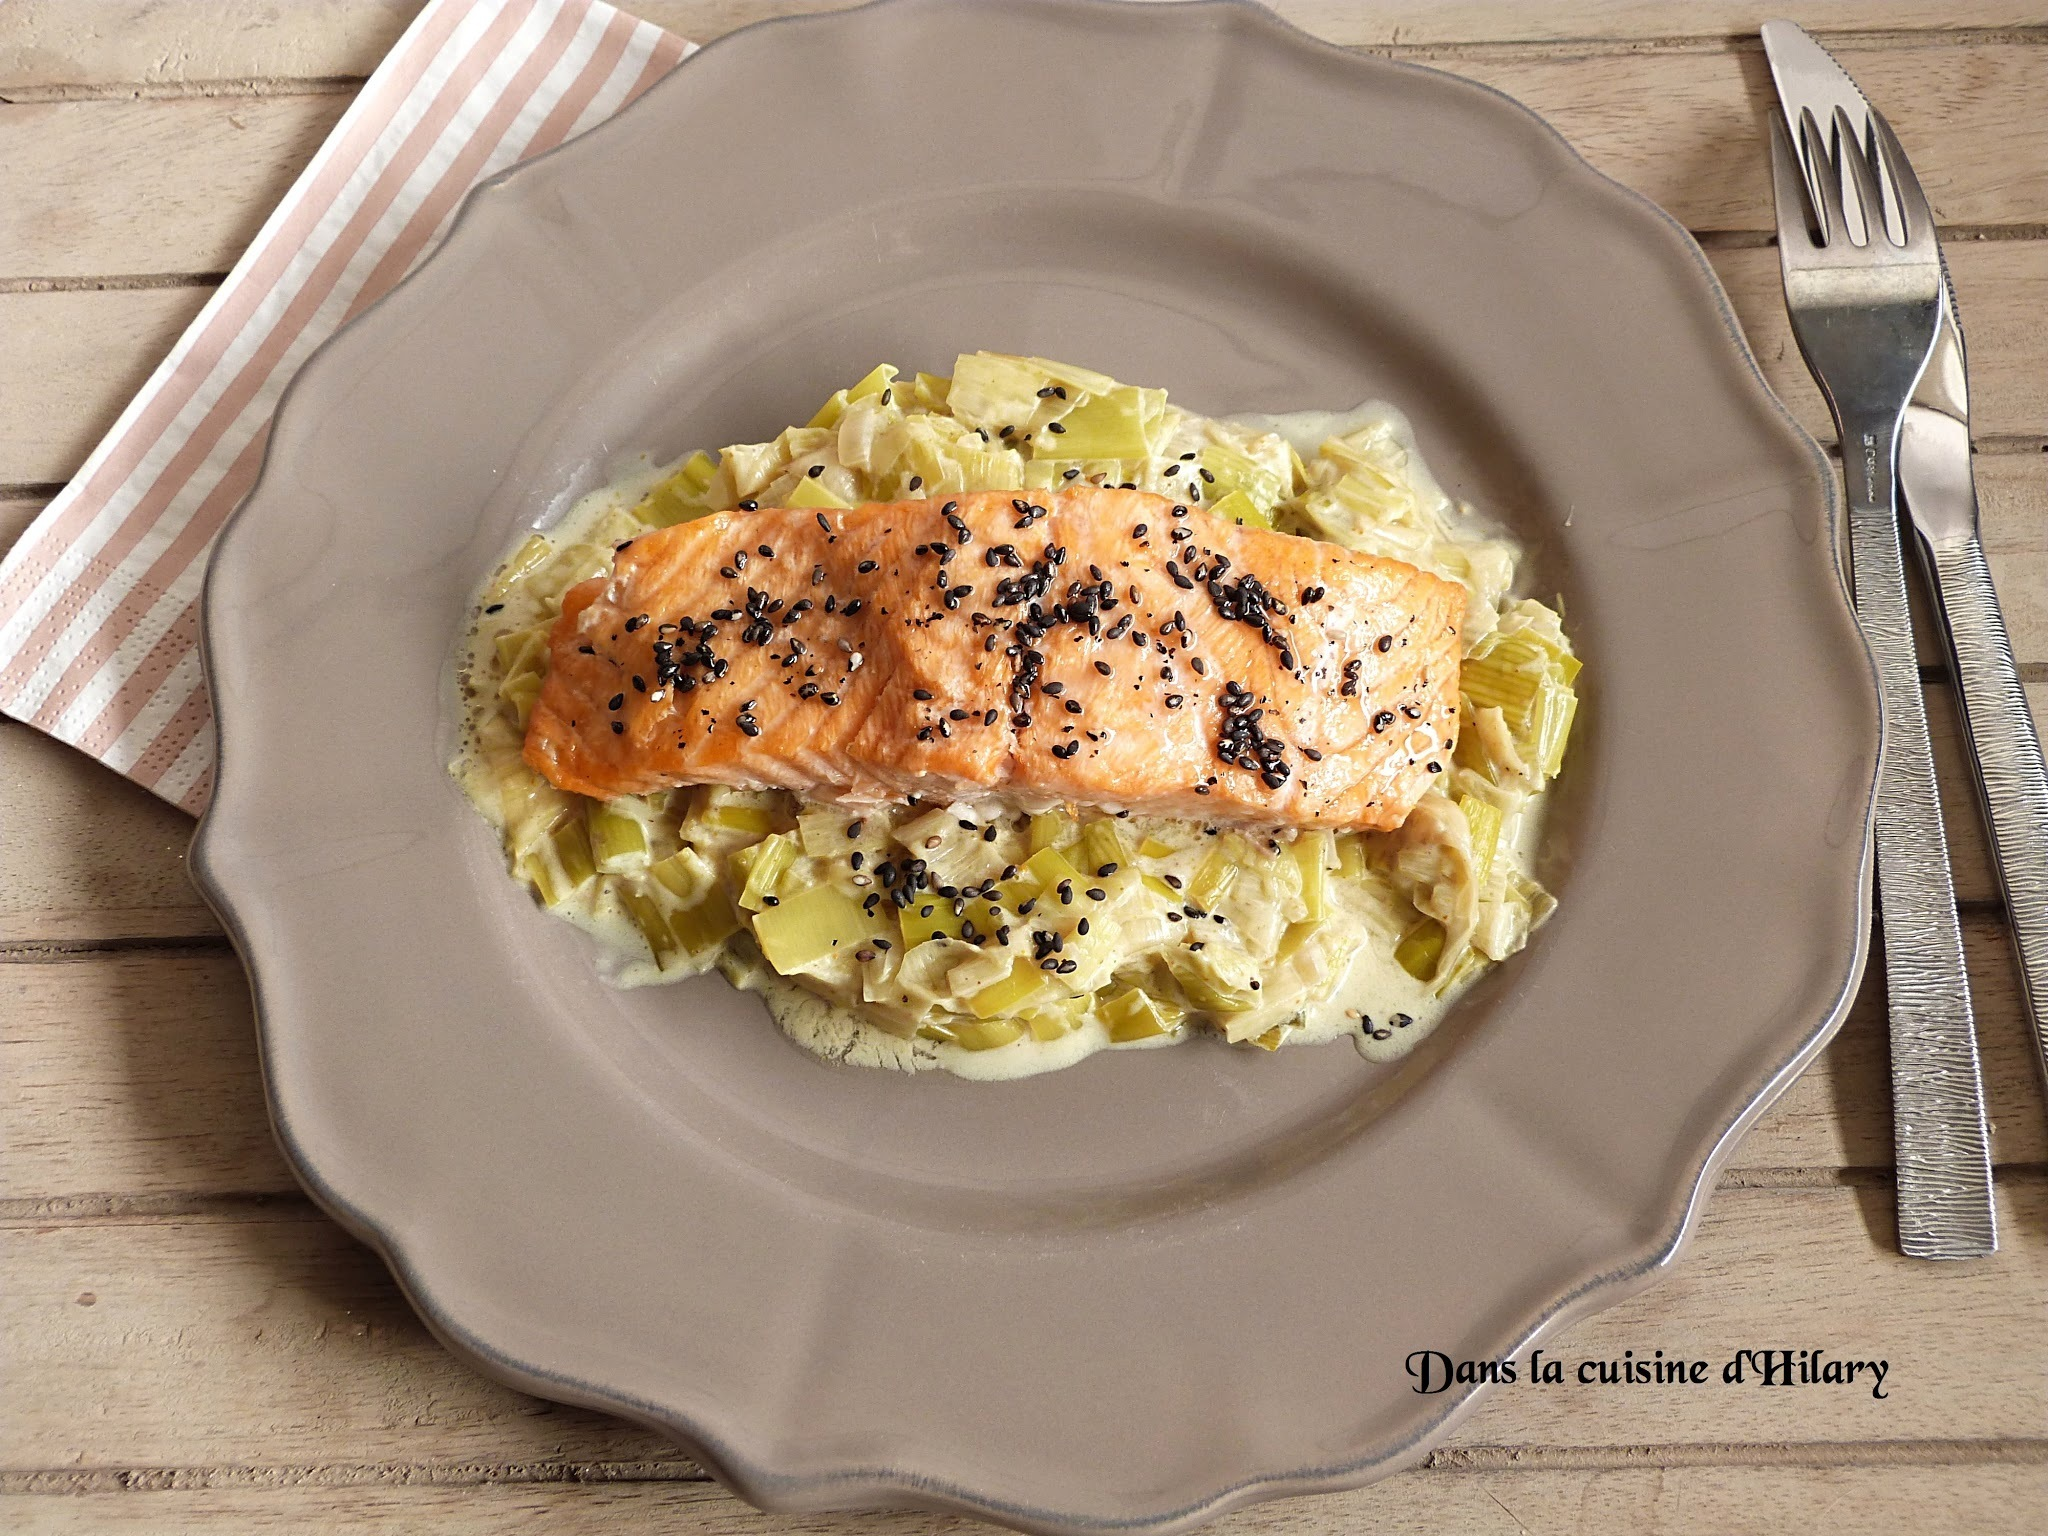 Fondue de poireau aux notes de curry et son saumon au sésame / Leek fondue with curry and its sesame salmon